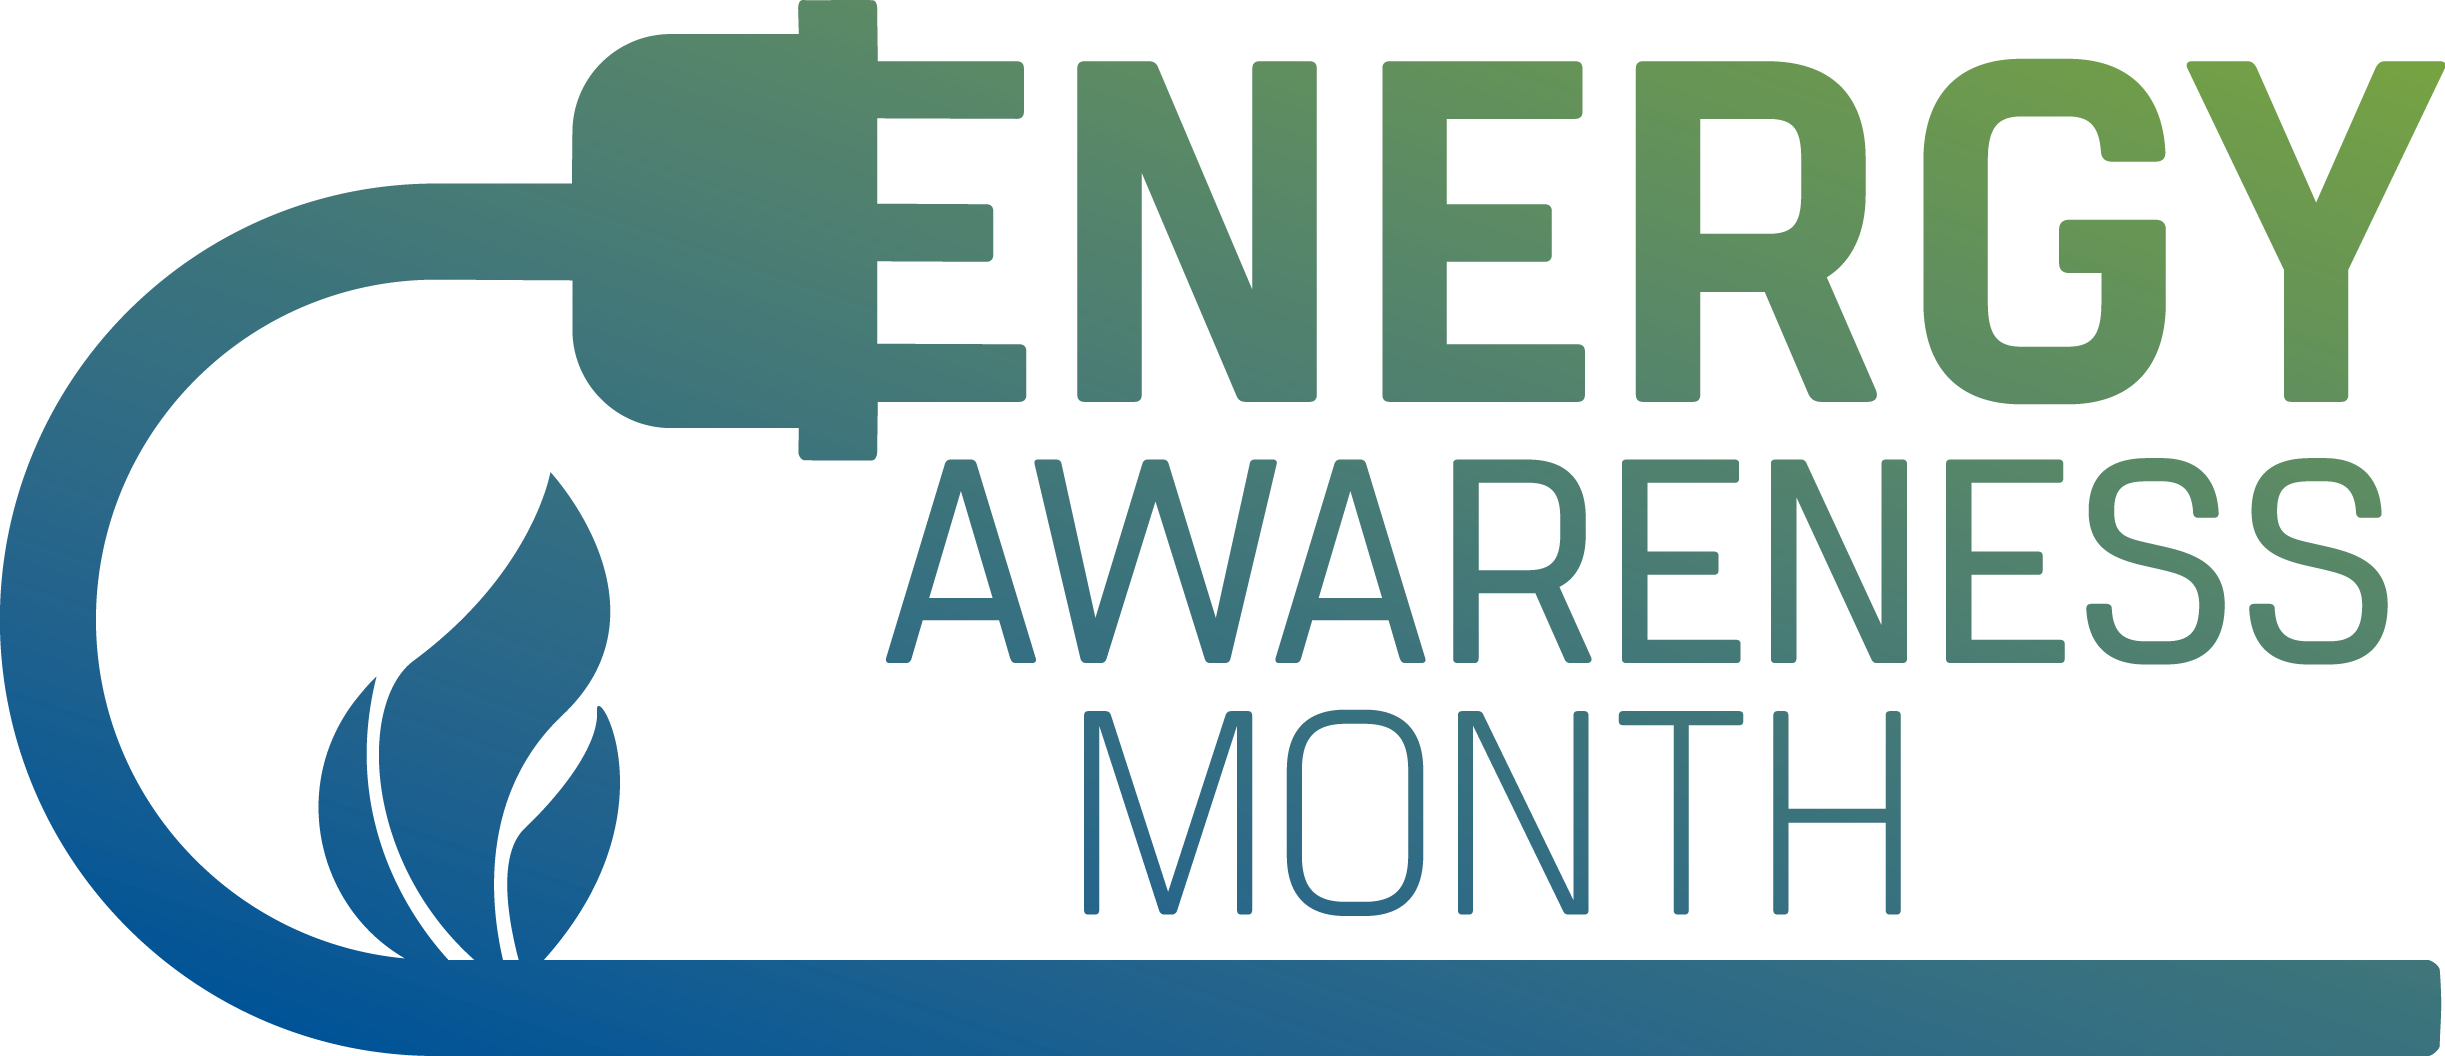 , Energy Awareness Month: Residential Energy Efficiency with CUB | Sustainability | University of Illinois at Chicago, The Circular Economy